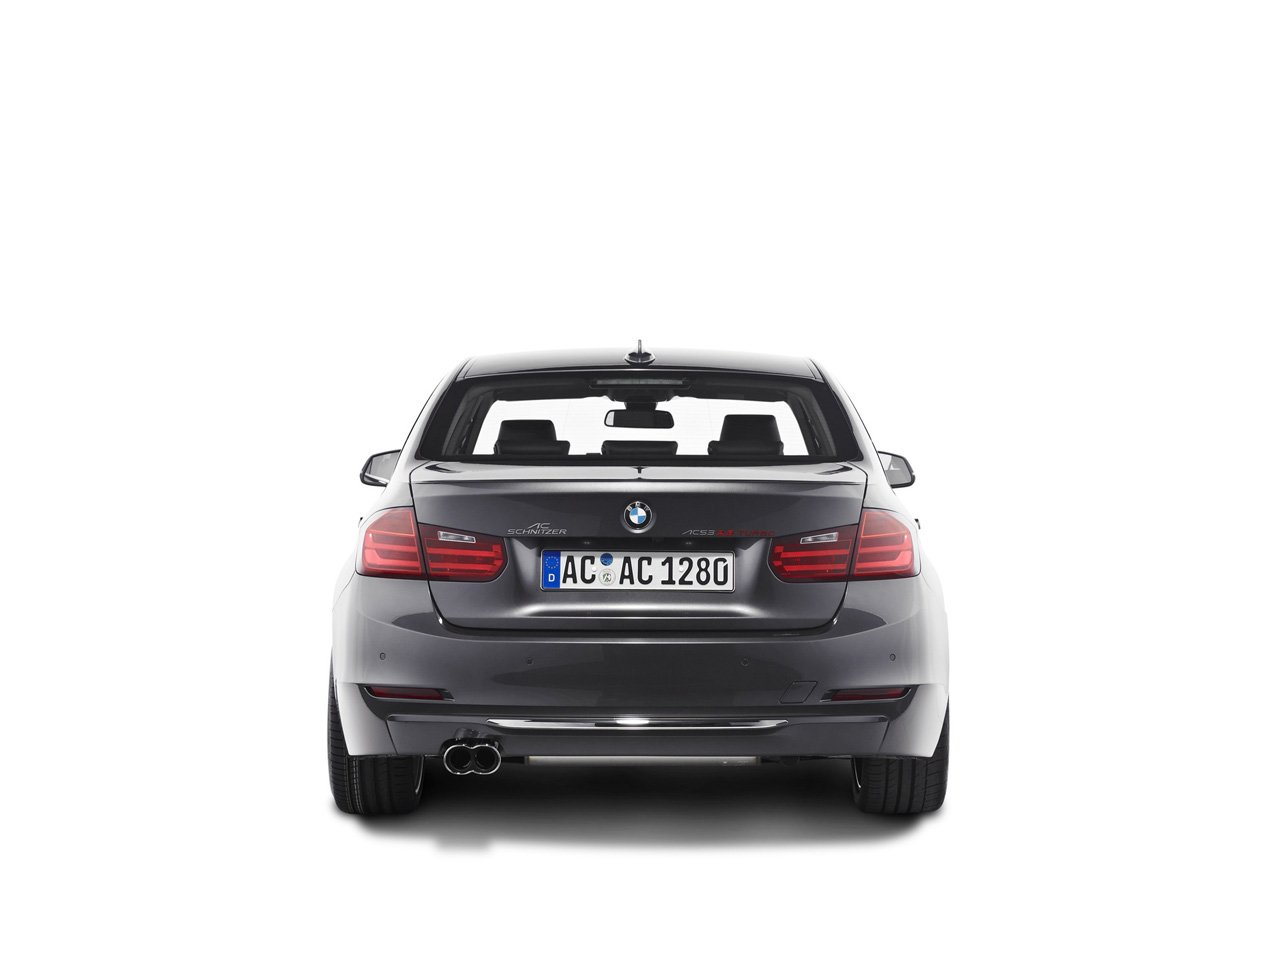 Latest 2012 Ac Schnitzer Bmw 328I Saloon Wallpapers Auto Cars Free Download